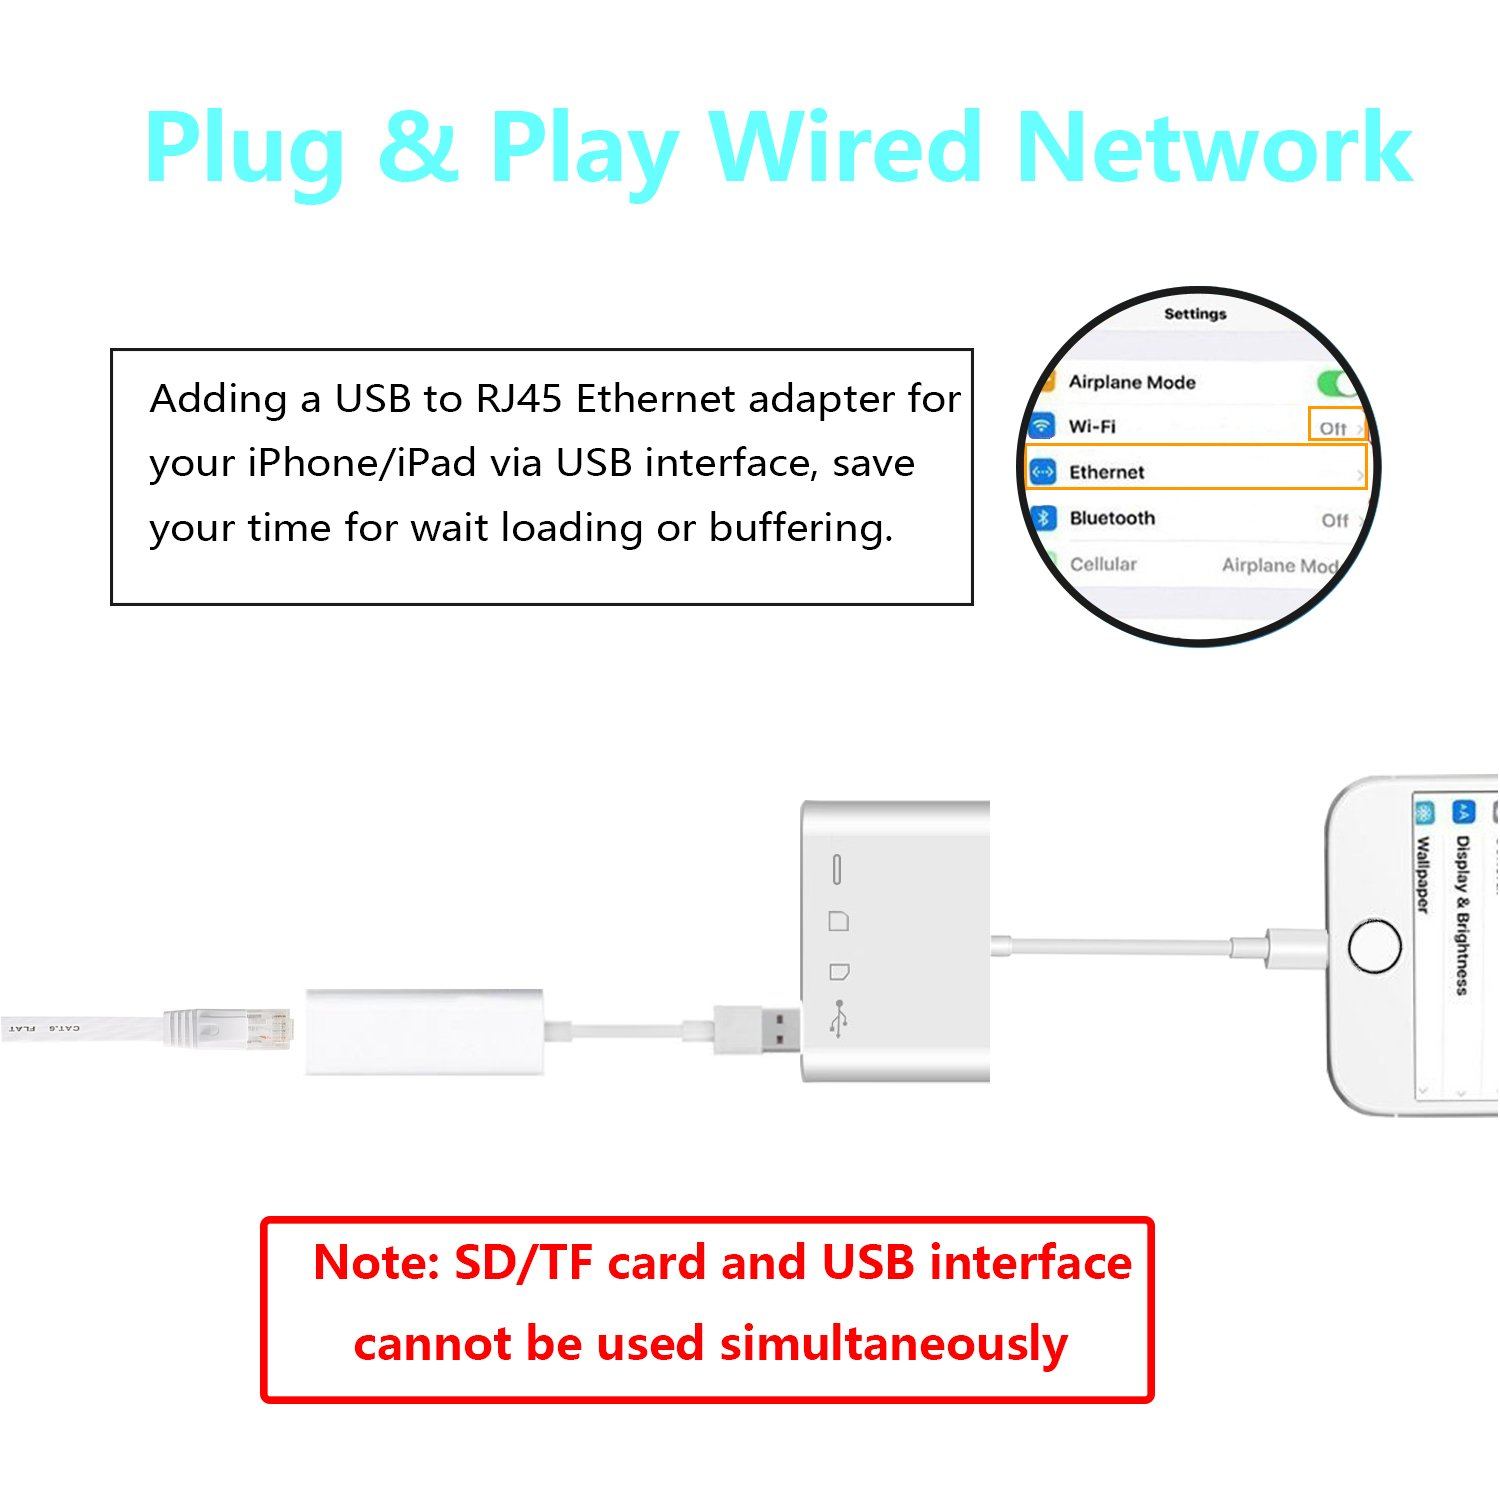 4 in 1 SD TF Card Reader Compatible iPhone iPad iPod,USB OTG Camera Connection Kit SD T-Flash Card Reader Work with Hubs Keyboards Audio/MIDI Interfaces Ethernet Adapter by Hkitty Xiong (Image #4)